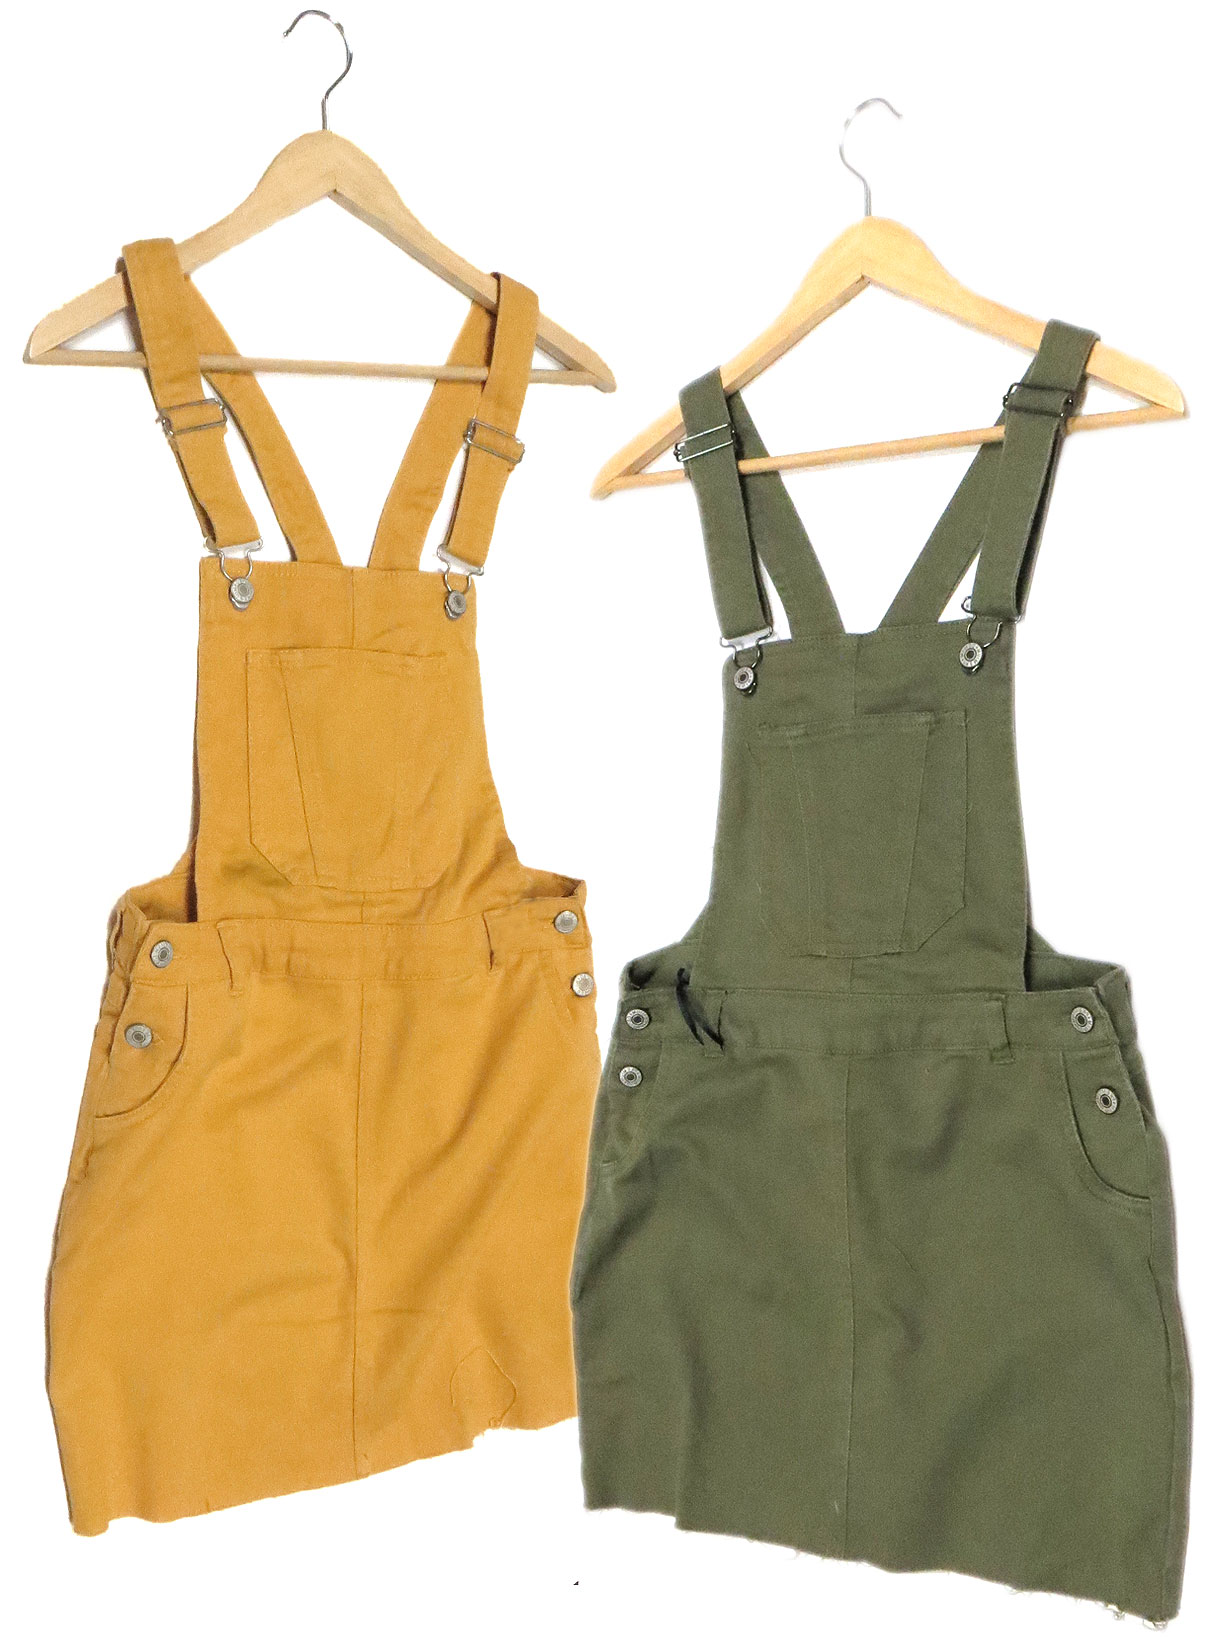 6e56560405b Stretch cotton denim overall skirt in mustard and olive. Hip & back pockets,  cut hem. Full size run.